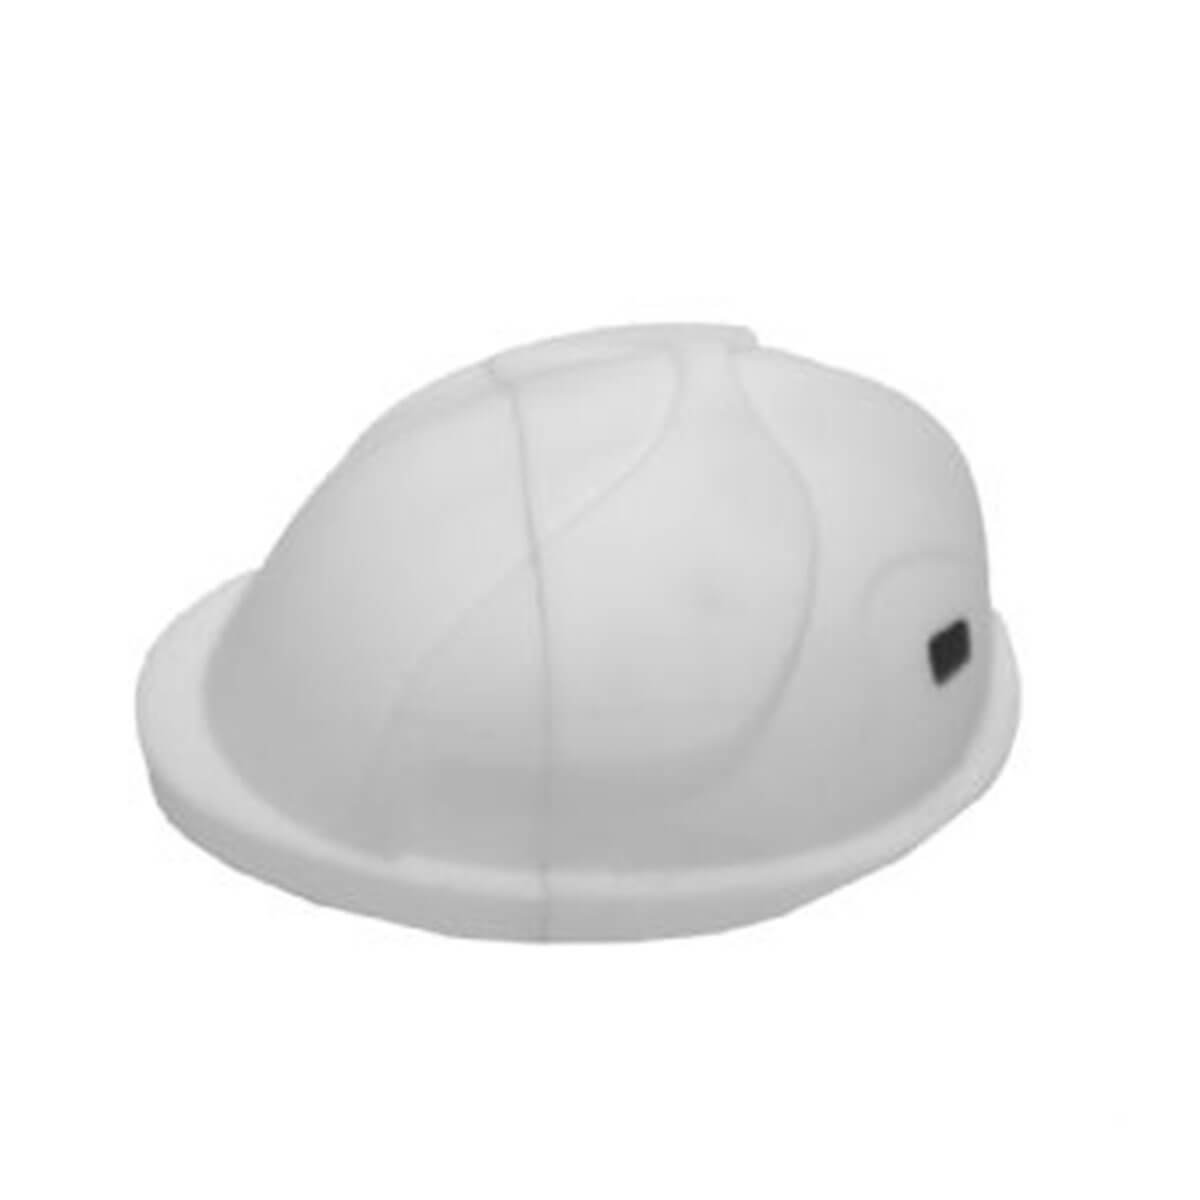 Hard Hat # 2 PVC Flash Drive-You can change up to 2 of the base PVC colours and print your logo in 1-2 colours in 1 position.